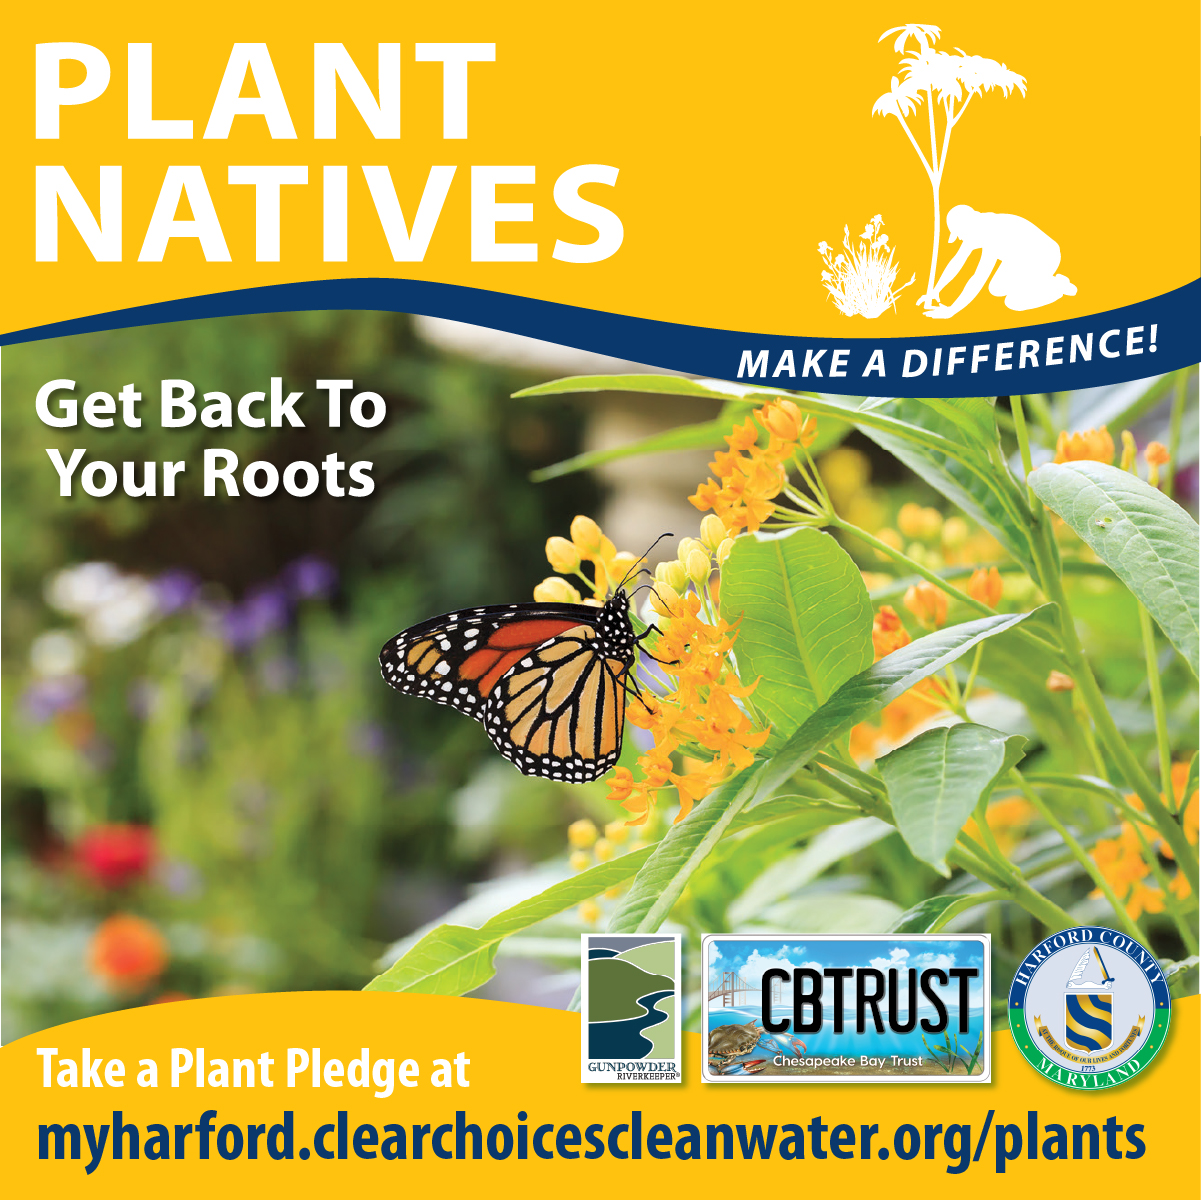 It's a Great Time to Take the Native Plant Pledge!